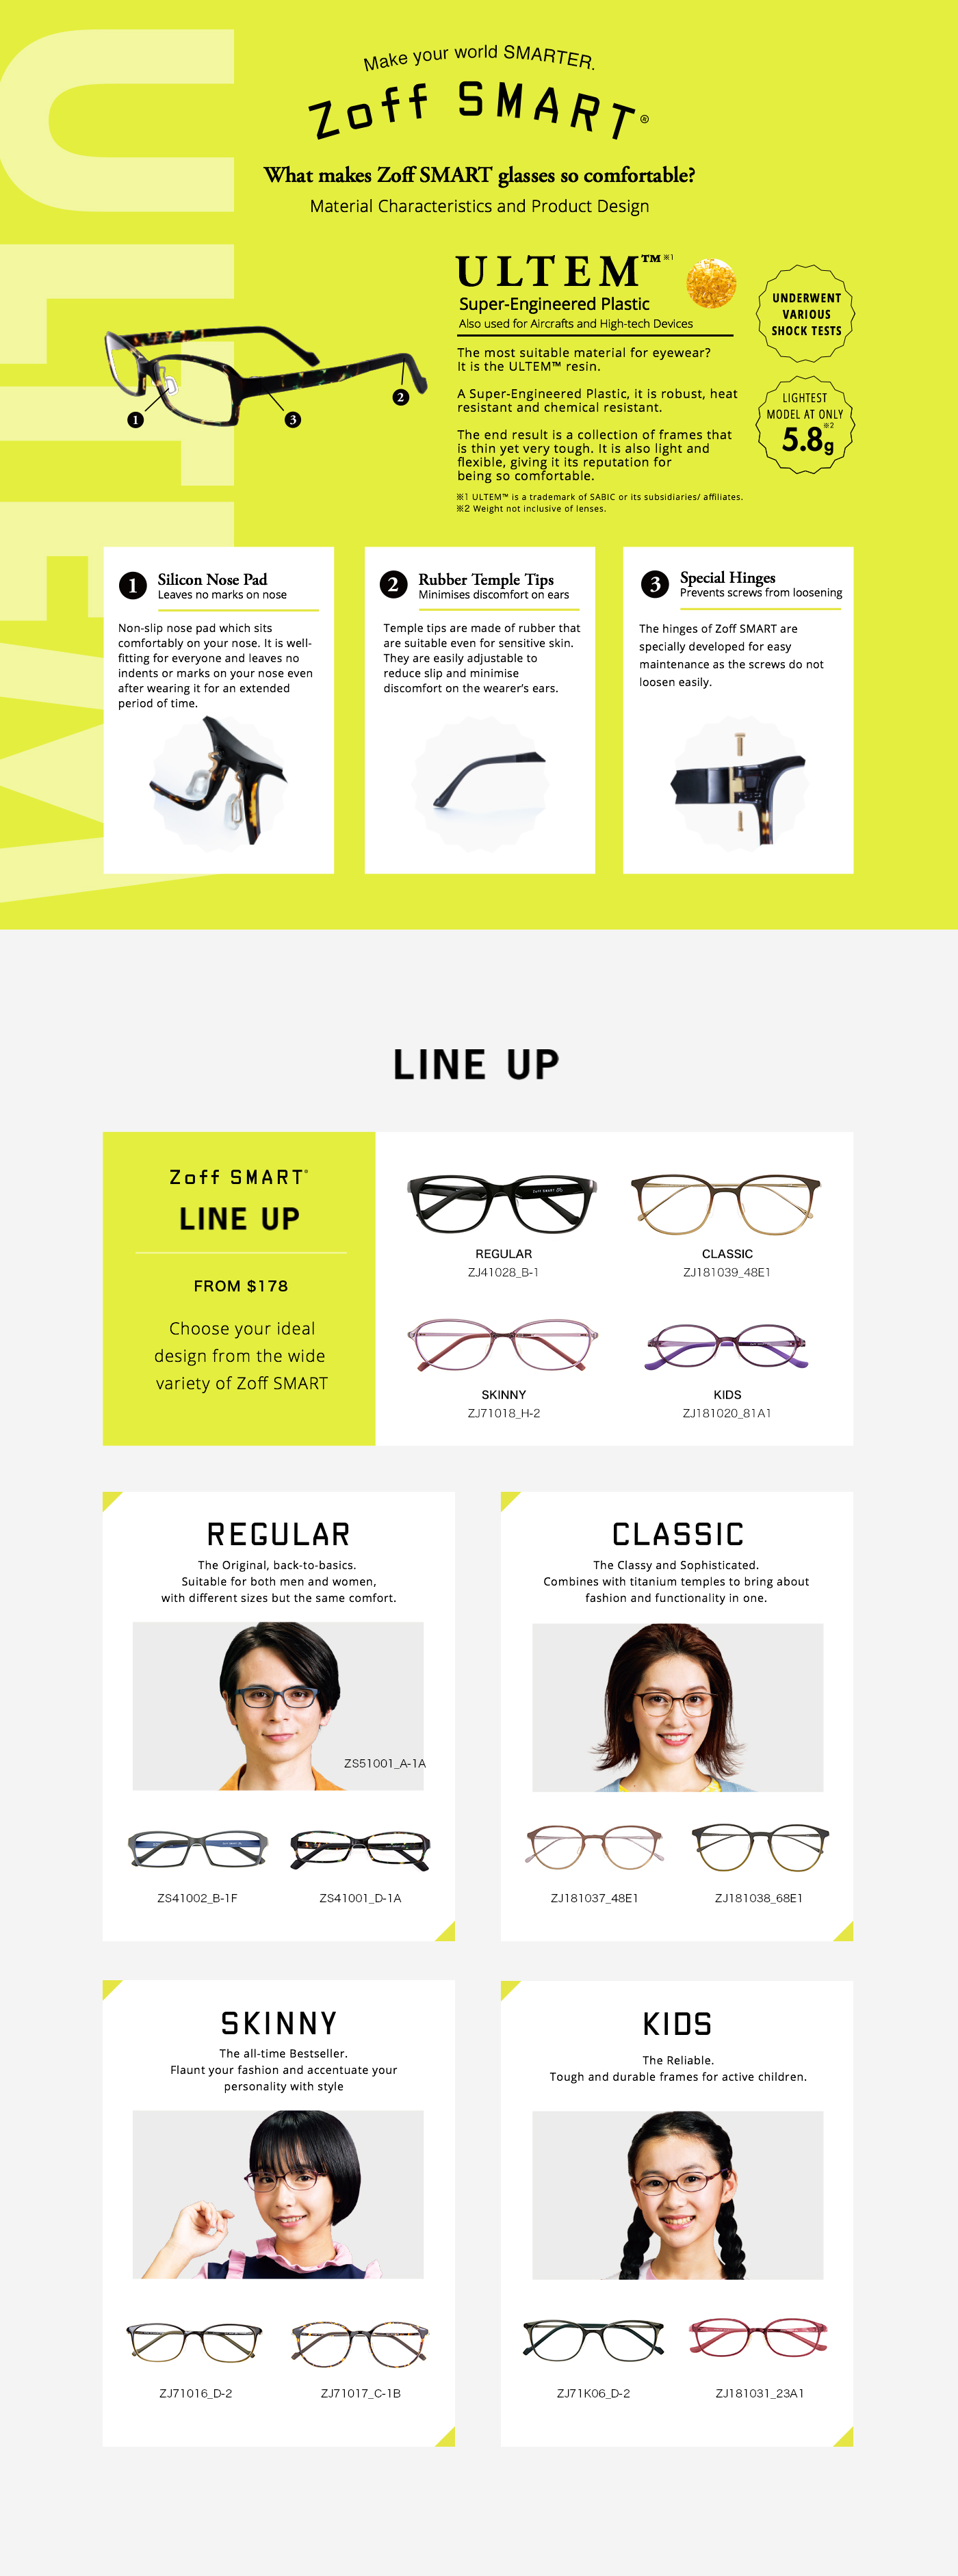 Zoff SMART Collection_Ultem Material_Lightweight Flexible Tough Glasses_Japanese Optical Eyewear_Spectacles